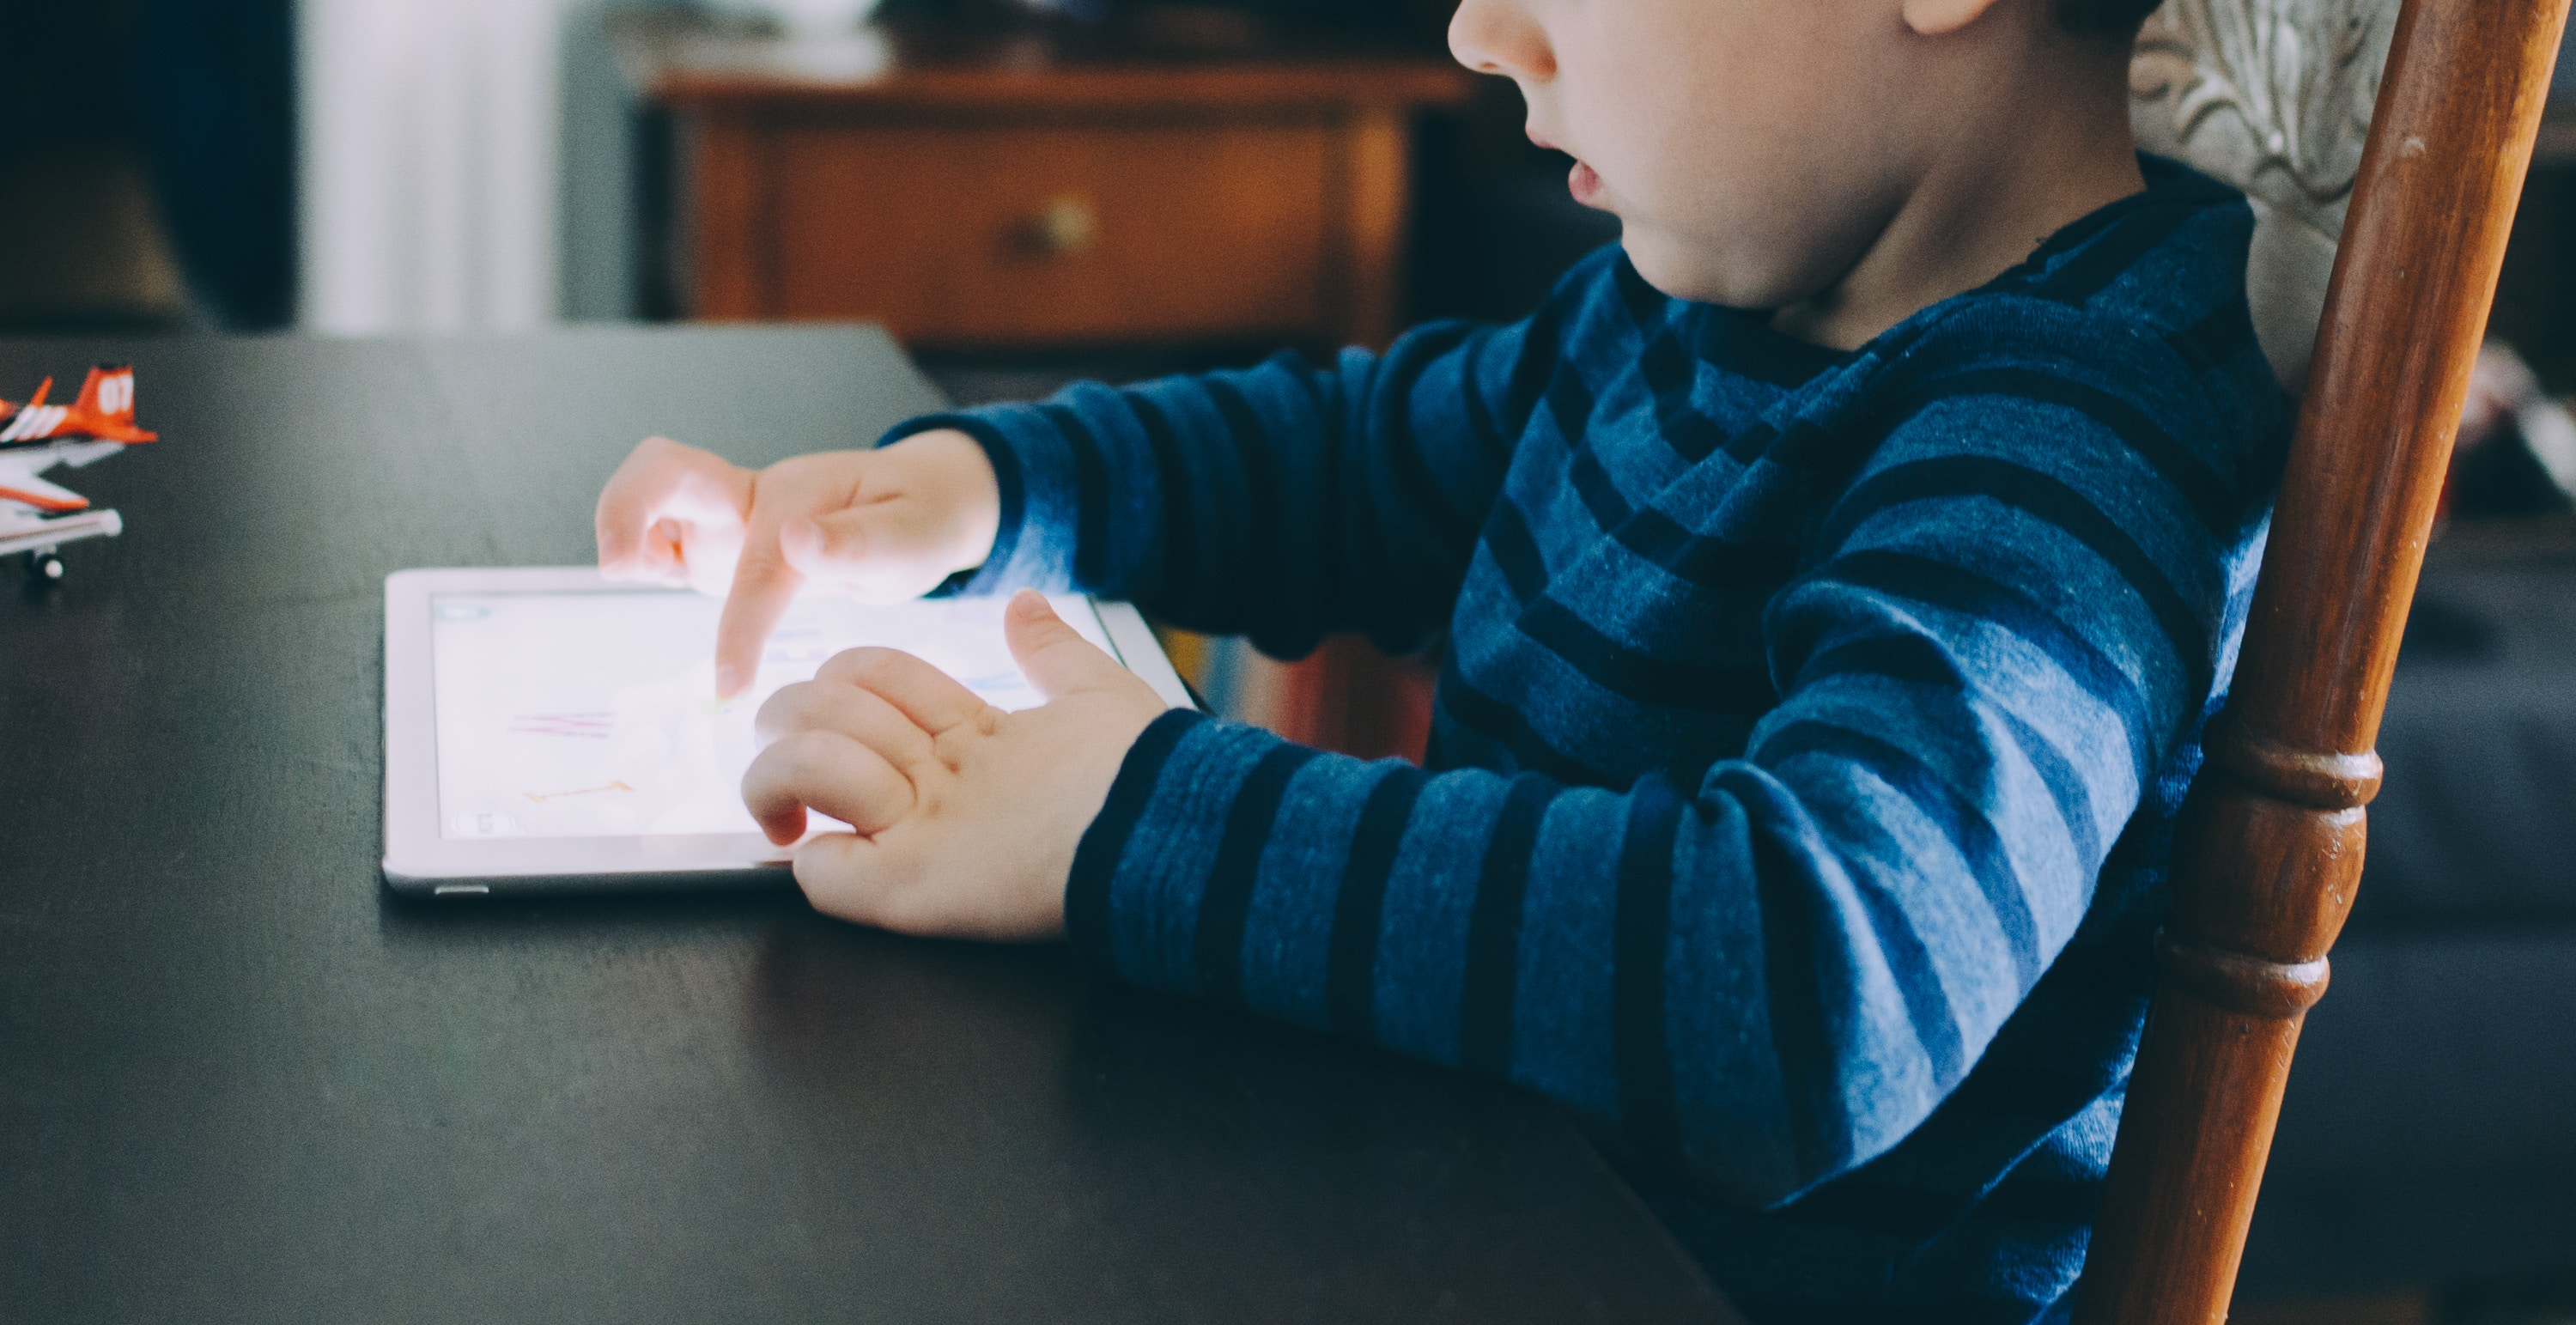 Boy playing on a tablet